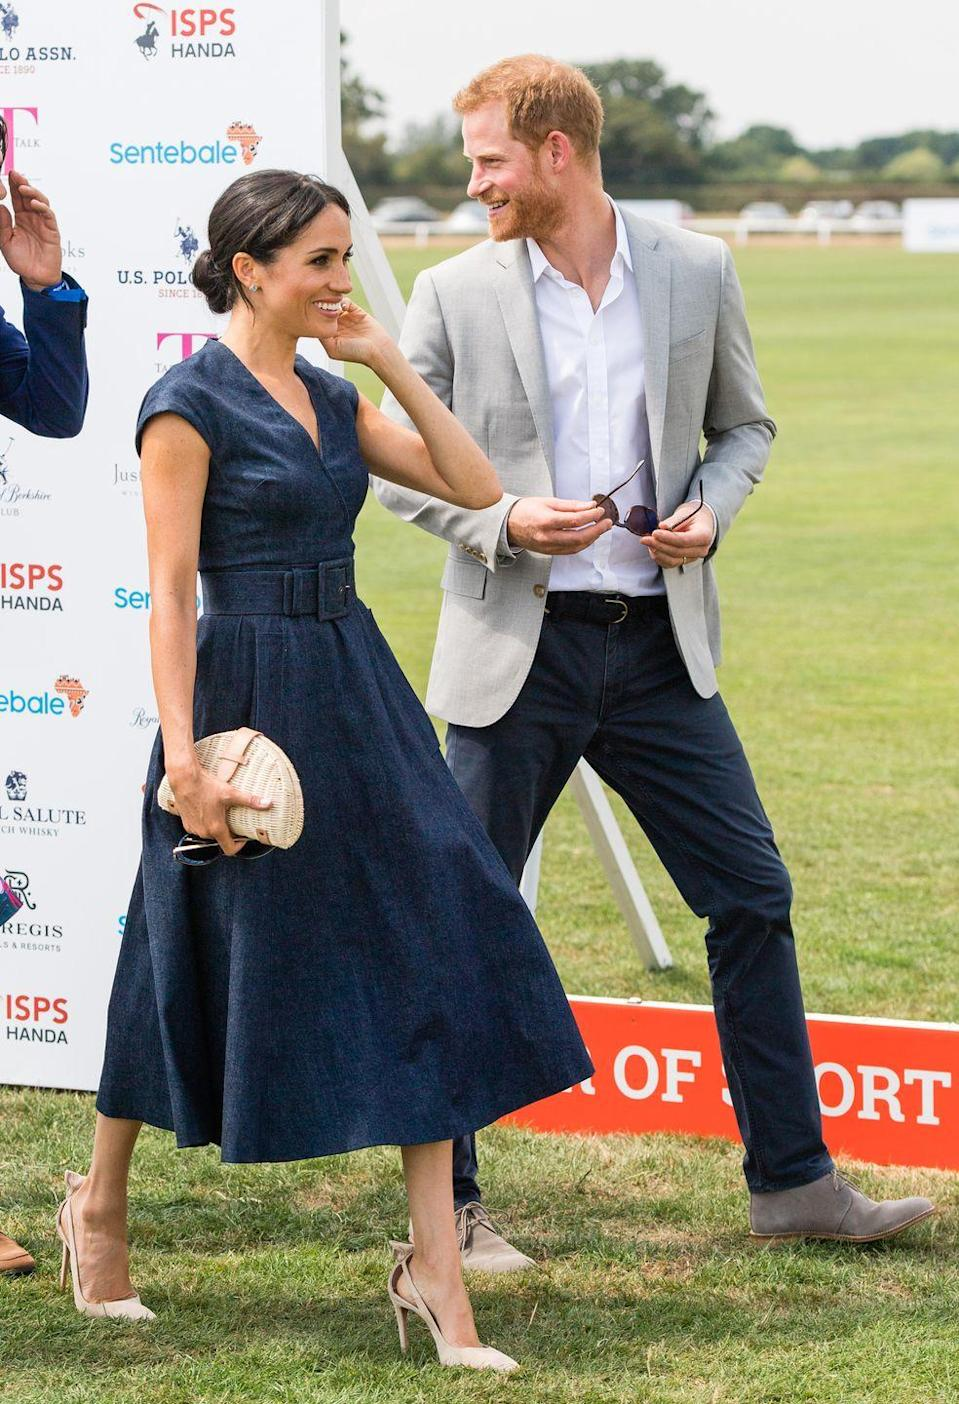 <p>Denim? At the polo? Meghan Markle made it work, in her belted A-line midi dress with cap sleeves. Complete with a straw clutch and nude high heels, she was the picture of smart summer elegance.</p>